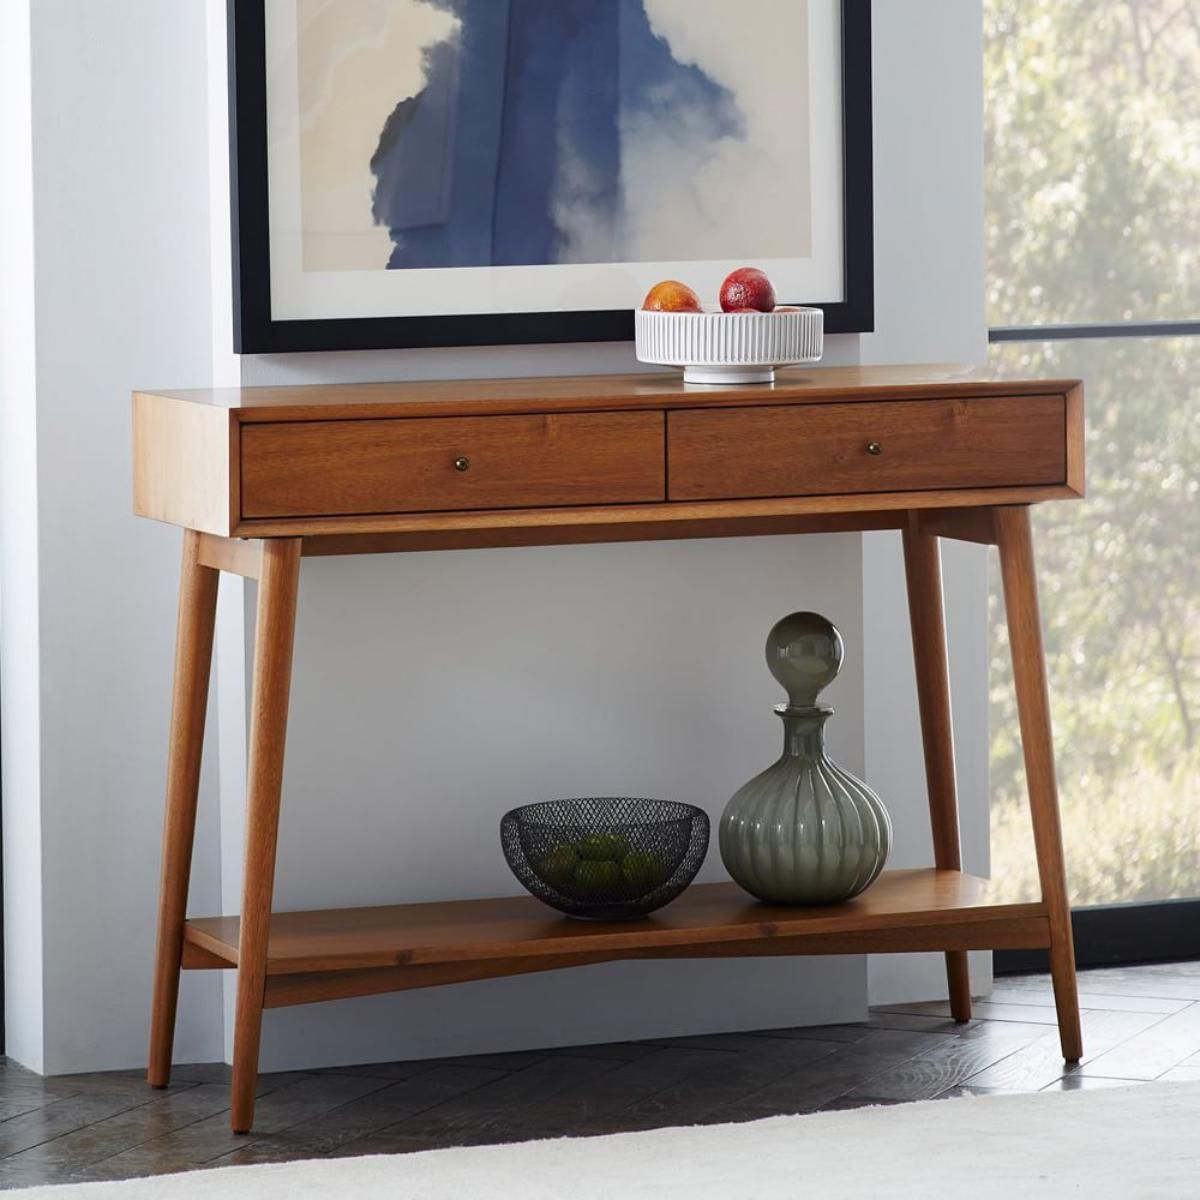 Responsible Retro Design Crafted Of FSCcertified Wood The Mid - Mid century modern foyer table